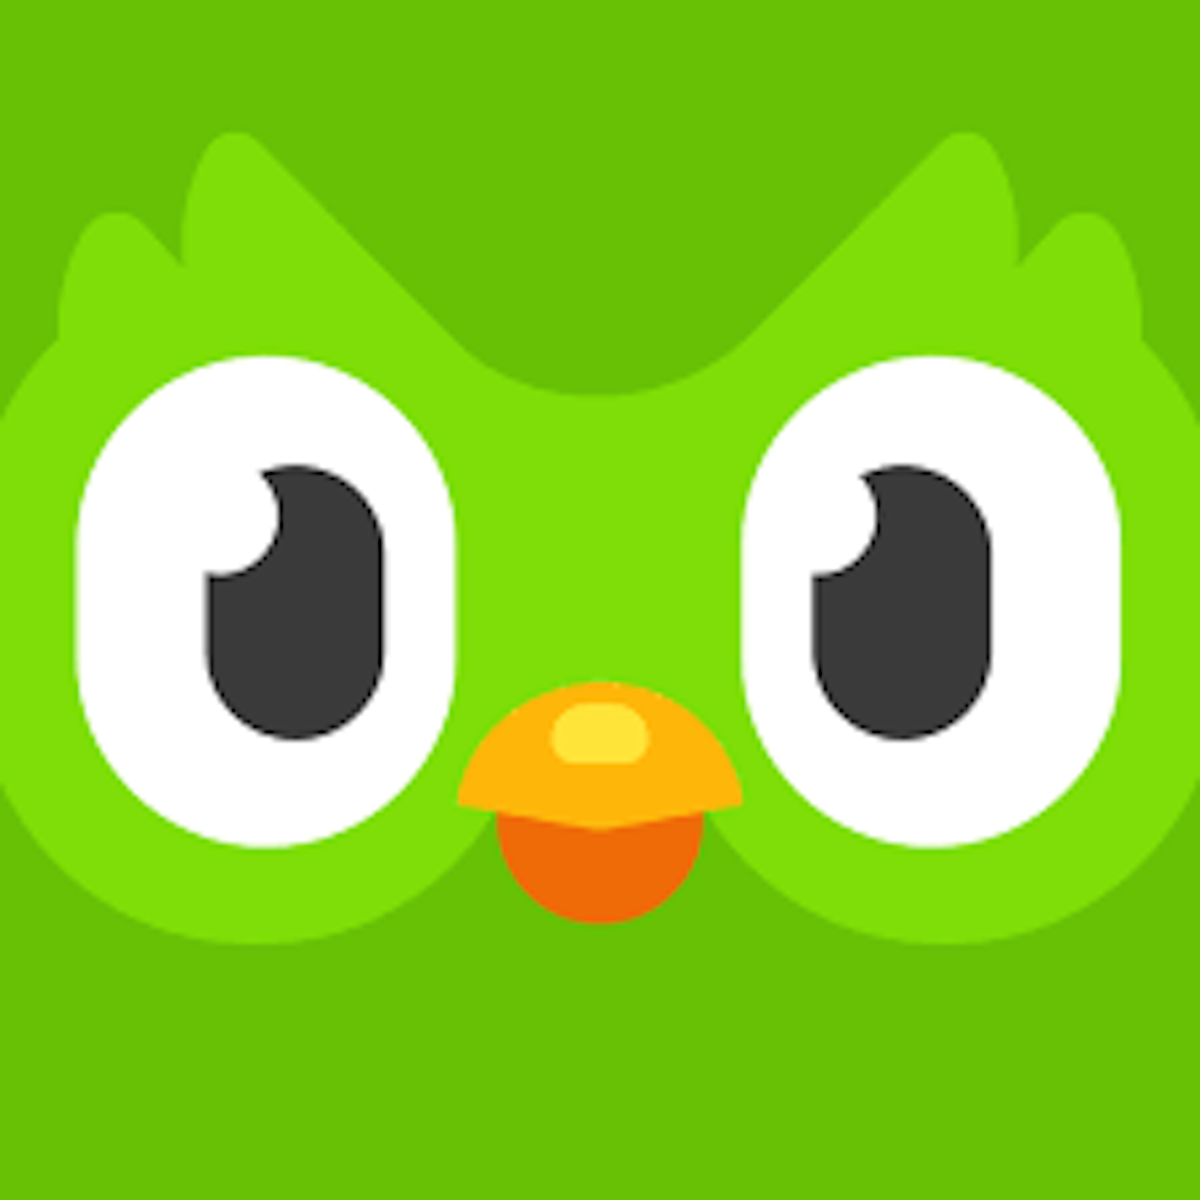 Duo, the green owl mascot of Duolingo gives notification reminders every day.